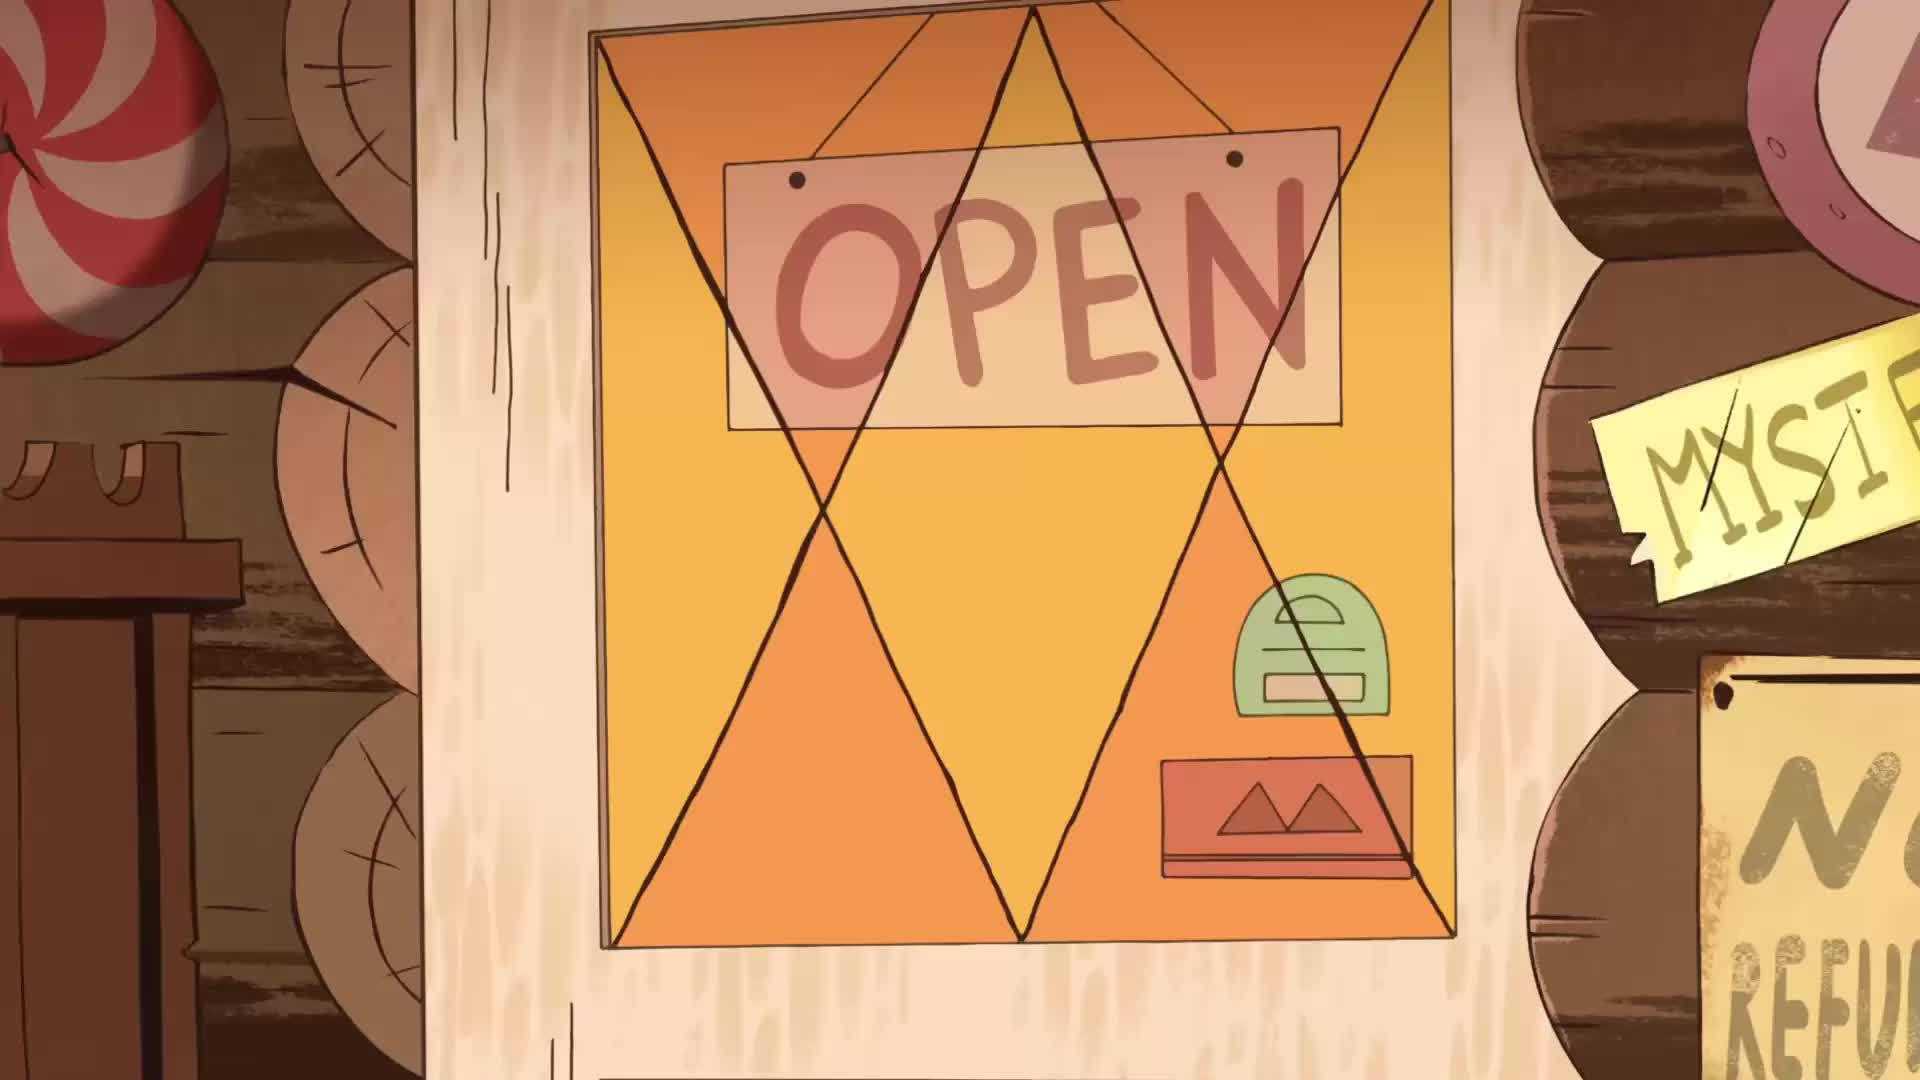 gravityfalls, When someone new finds their way here (reddit) GIFs